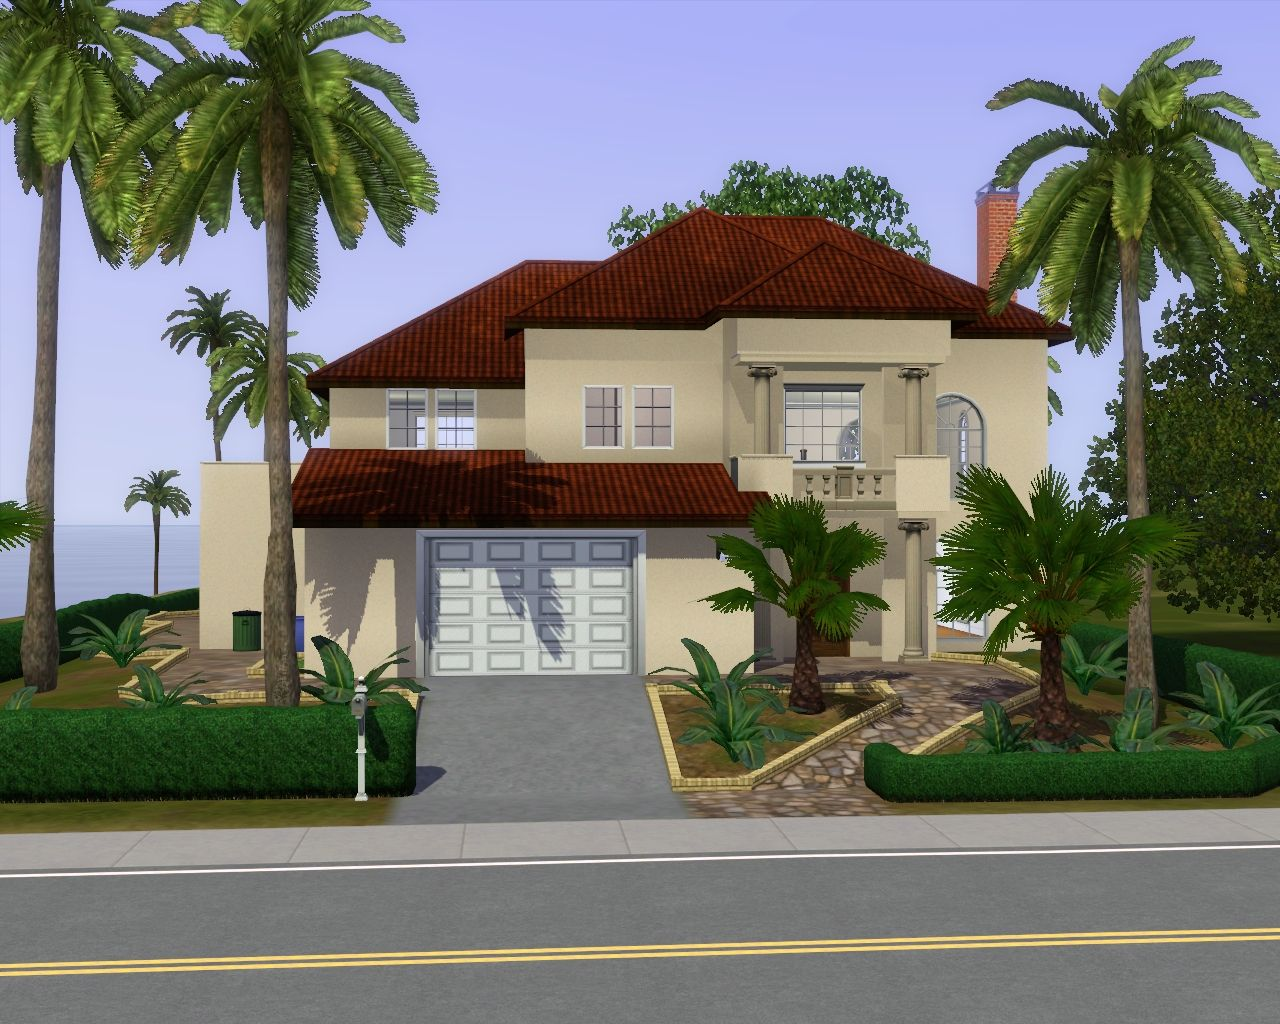 1000+ images about Sims 3 house ideas on Pinterest - ^